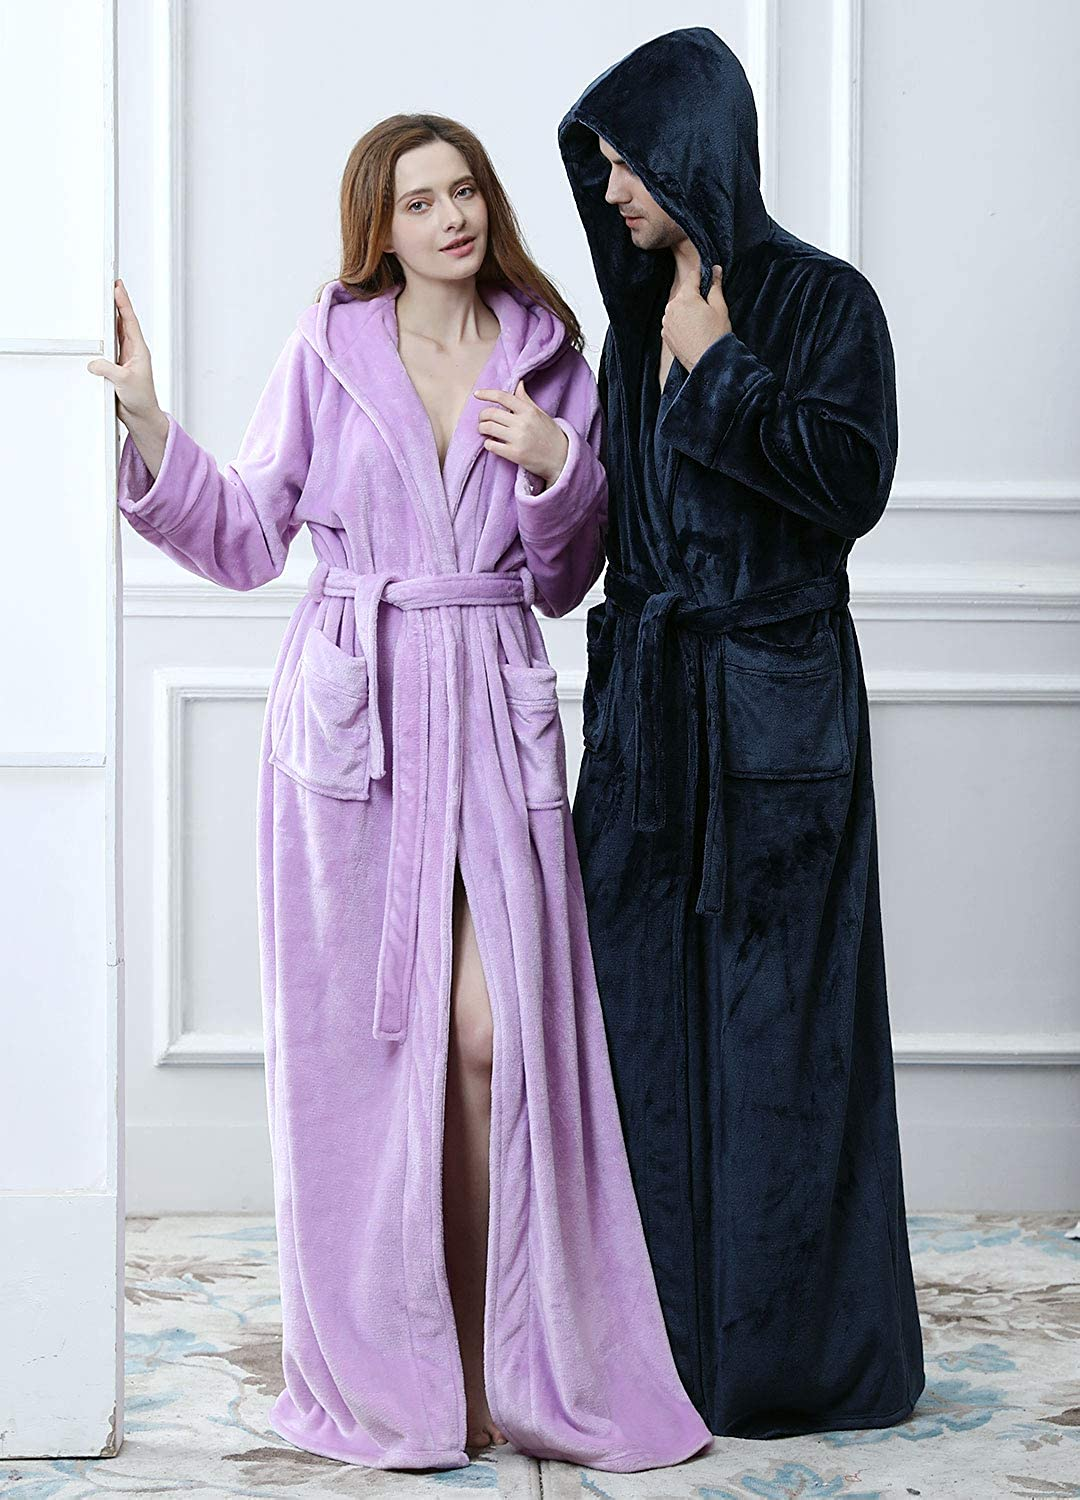 Women Winter Fleece Dressing Gown with Hood Fluffy Long Night Gown Purple  Red Blue Beige Ladies Luxury Towelling Bathrobe Full Length Spa Robe M L XL  ... 236dcade8